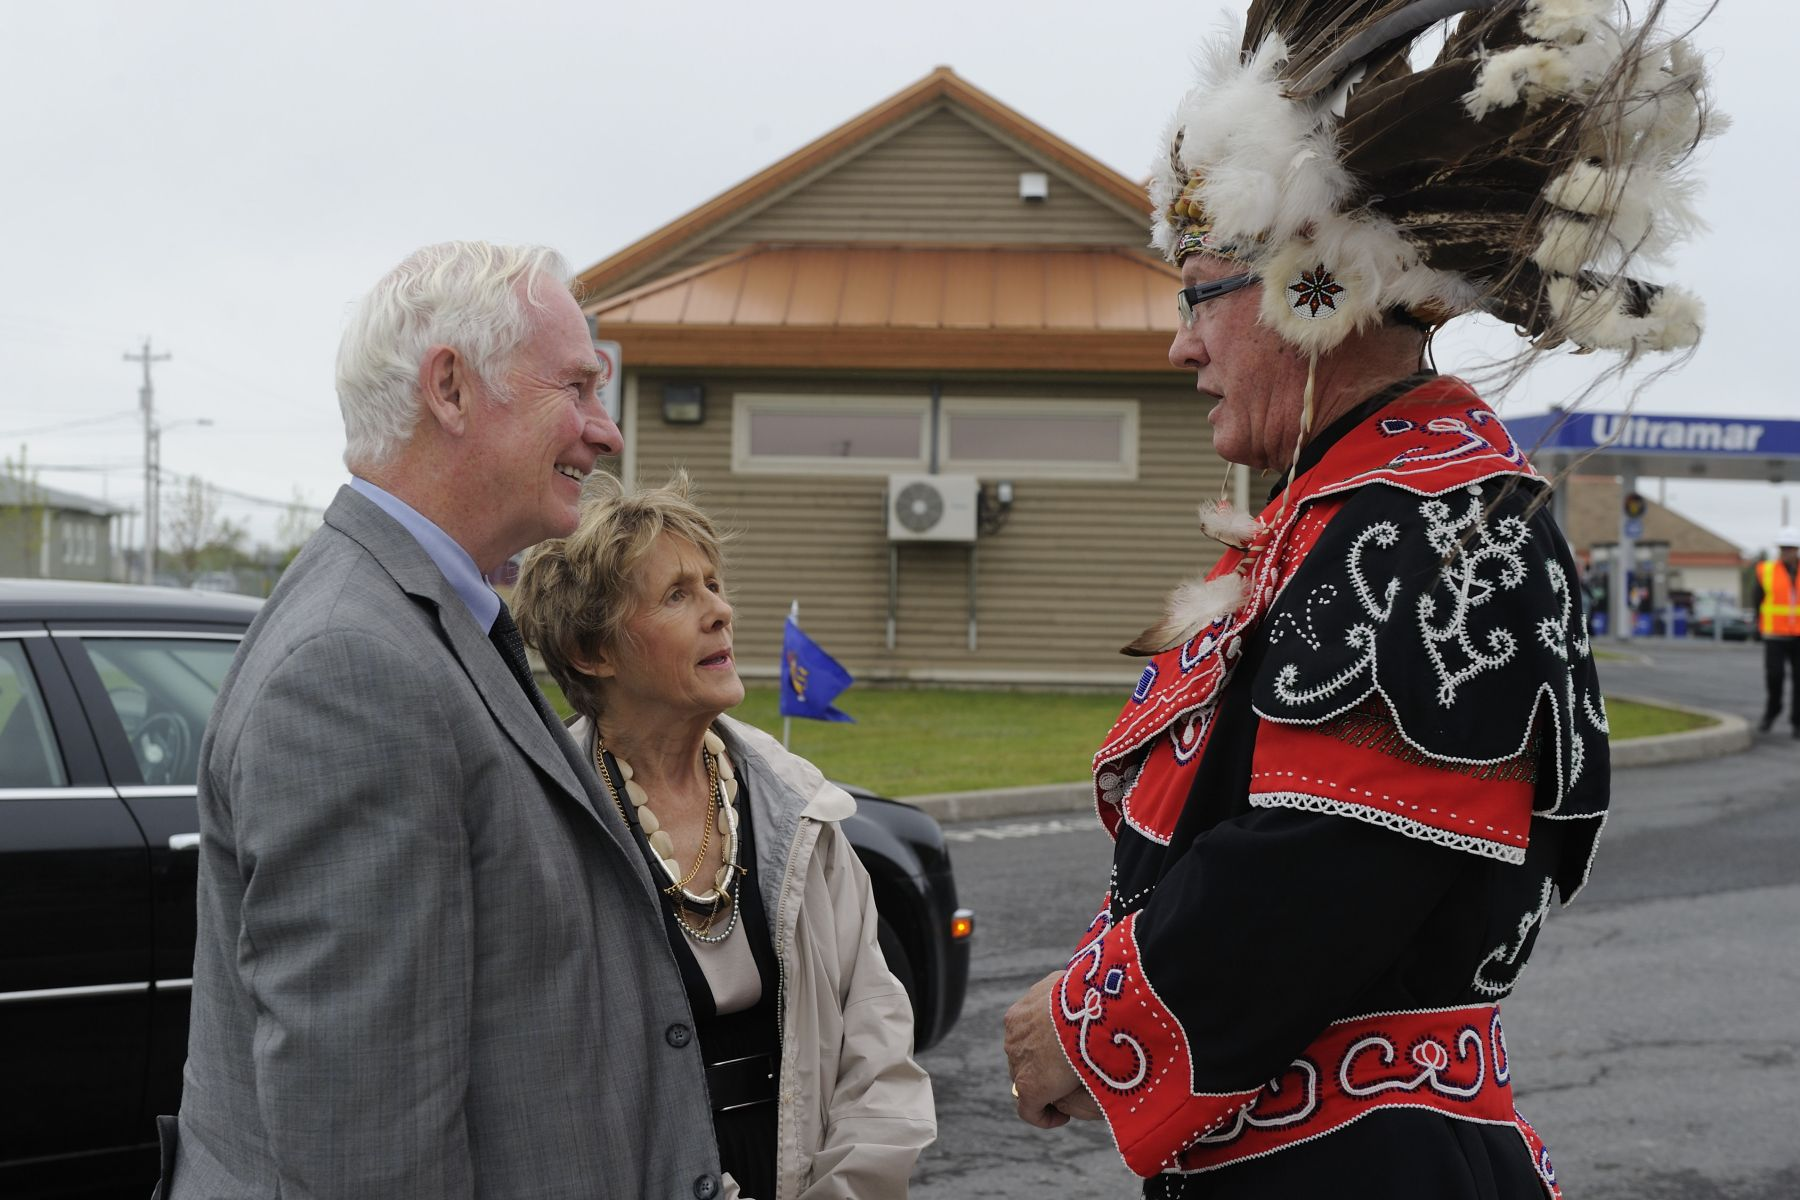 Upon their arrival in the Community of Membertou, Their Excellencies were greeted by Chief Terry Paul.